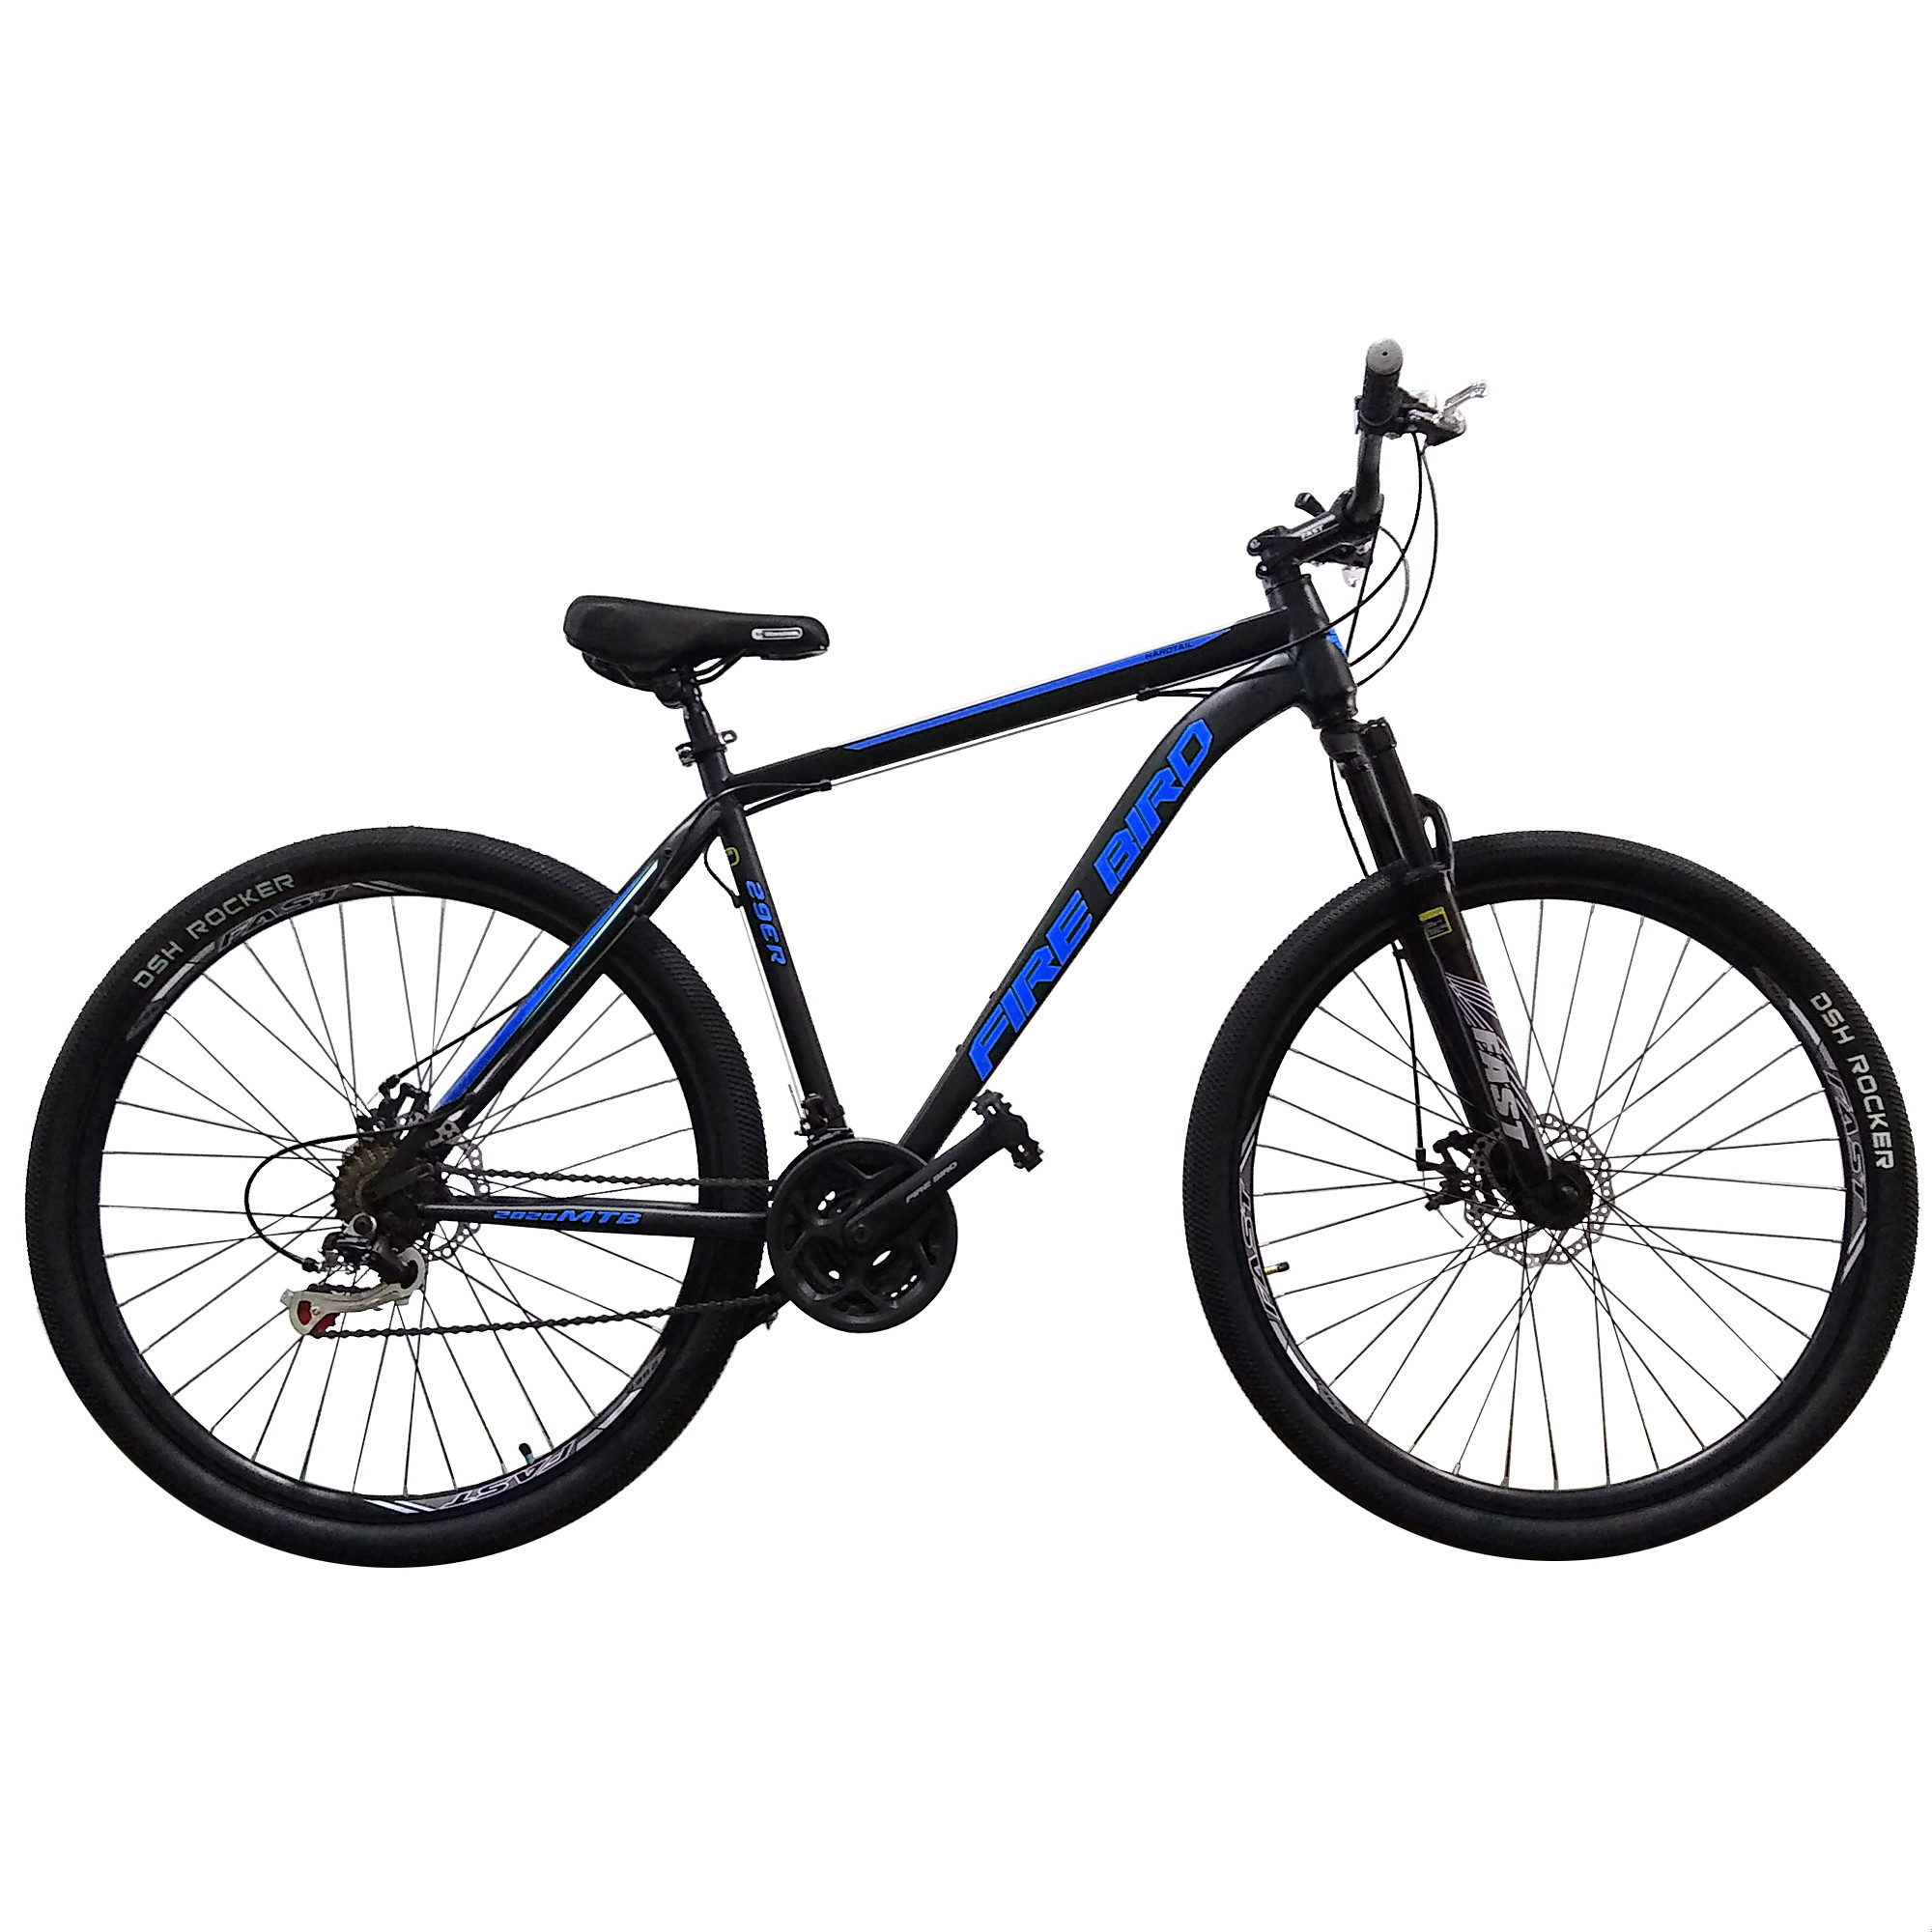 Bicicleta Mountain Bike Fire Bird Turbo By Raleigh R29 Shimano